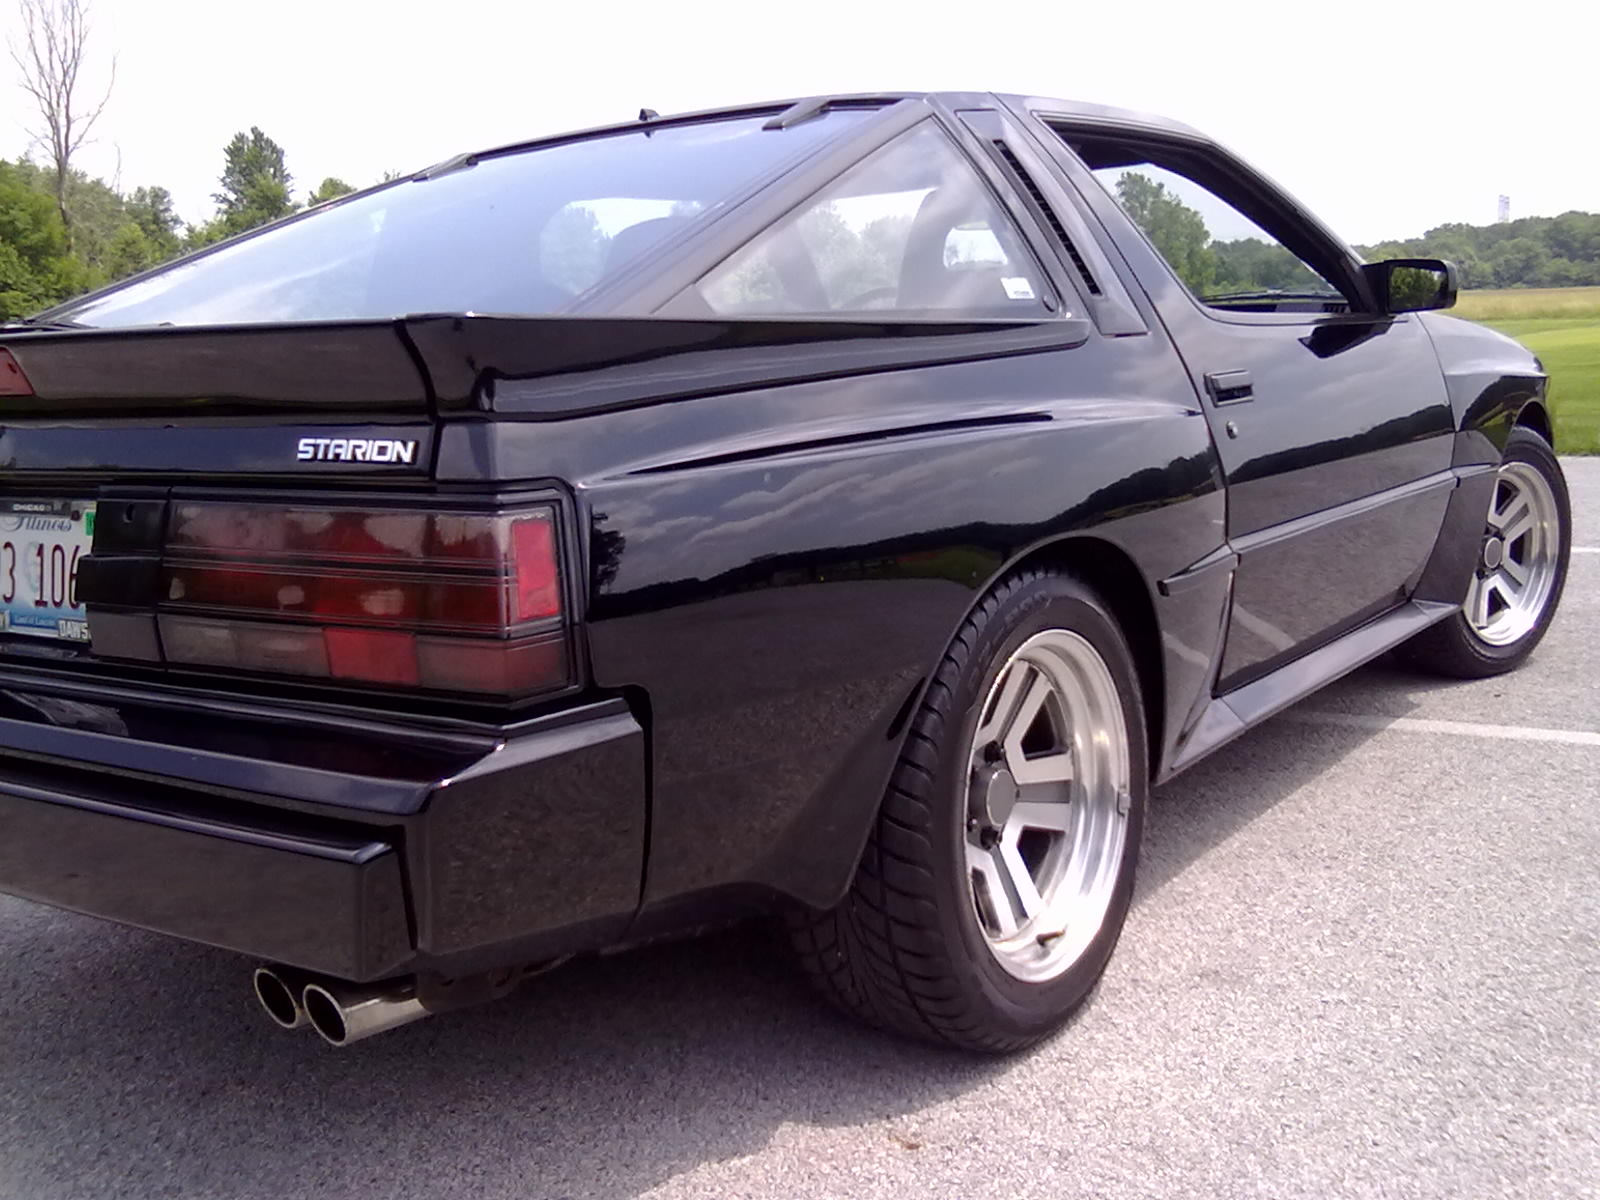 Mitsubishi Starion Review And Photos